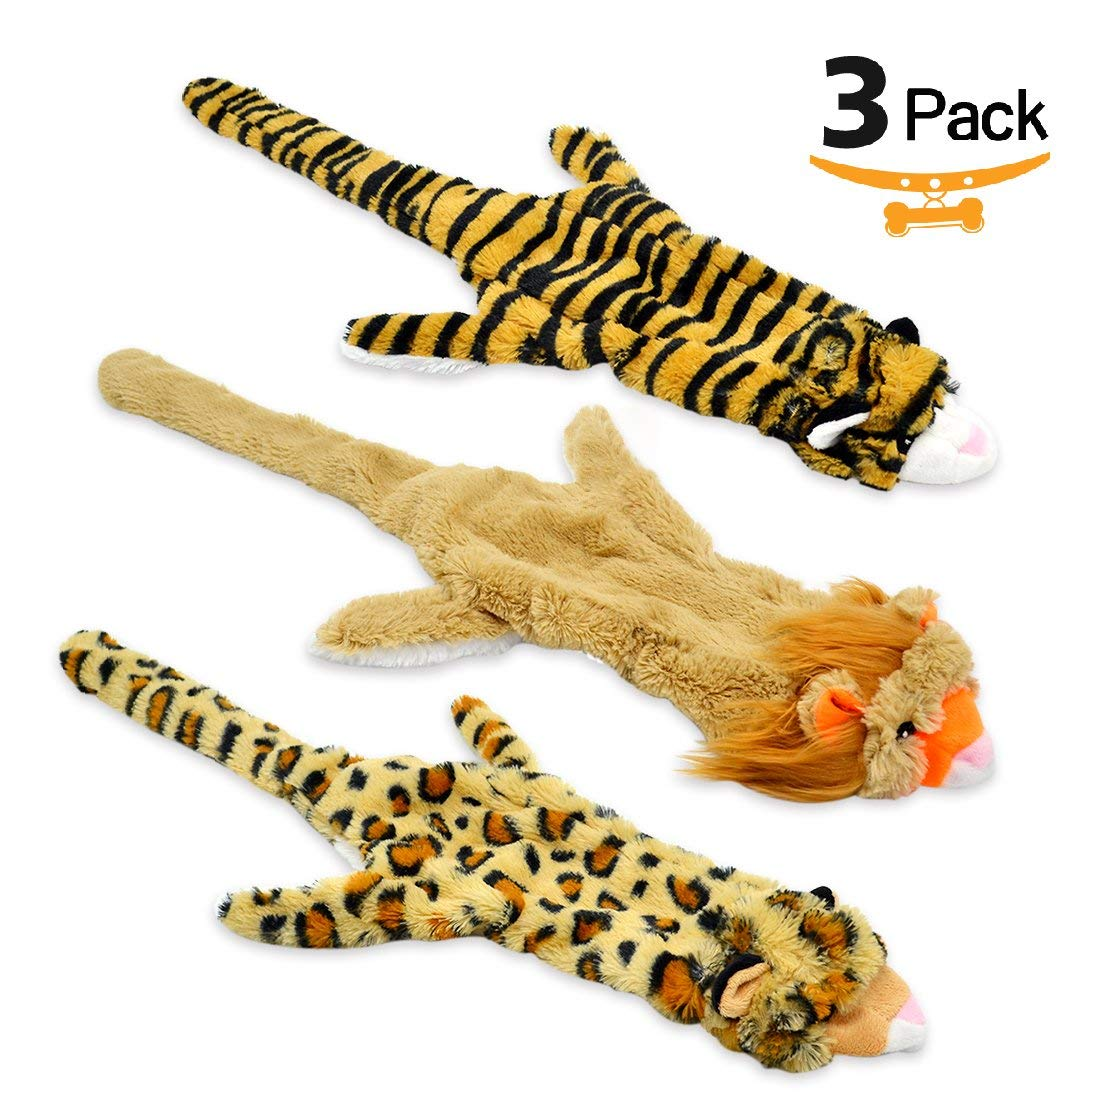 UOLIWO Stuffingless Dog Toys with Squeaker, Durable No Stuffing Dog Squeaky Toys Flat Skinny Lion Tiger Leopard Plush Dog Chew Toys for Small Medium and Large Dogs Set of 3